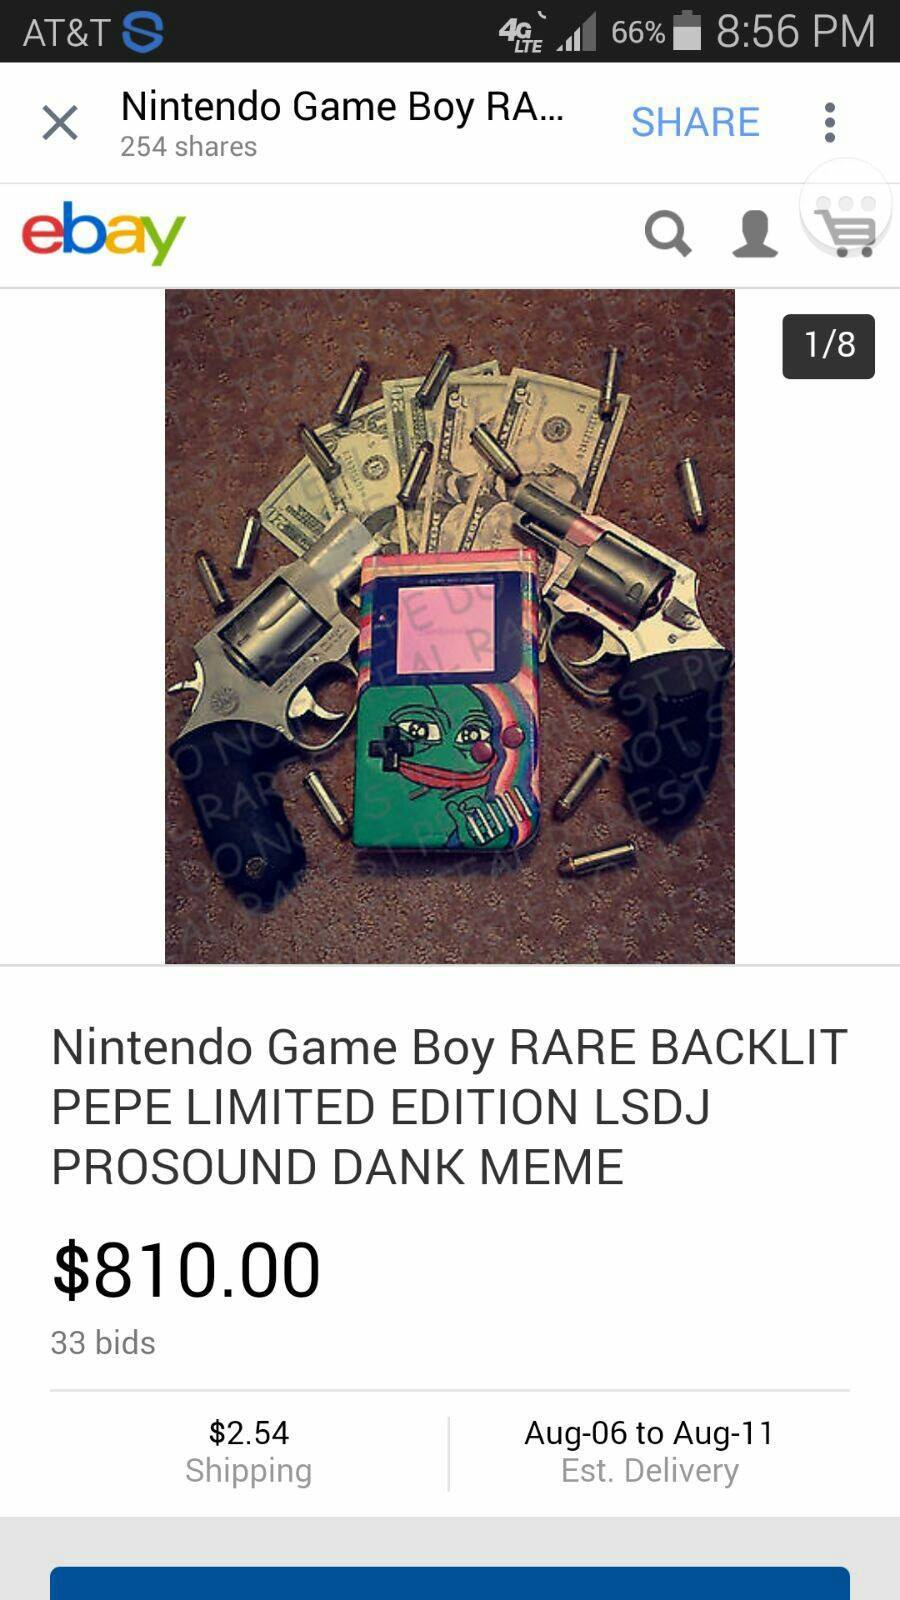 The Pepeboy, Now comes with Super Weed Bros delux - meme